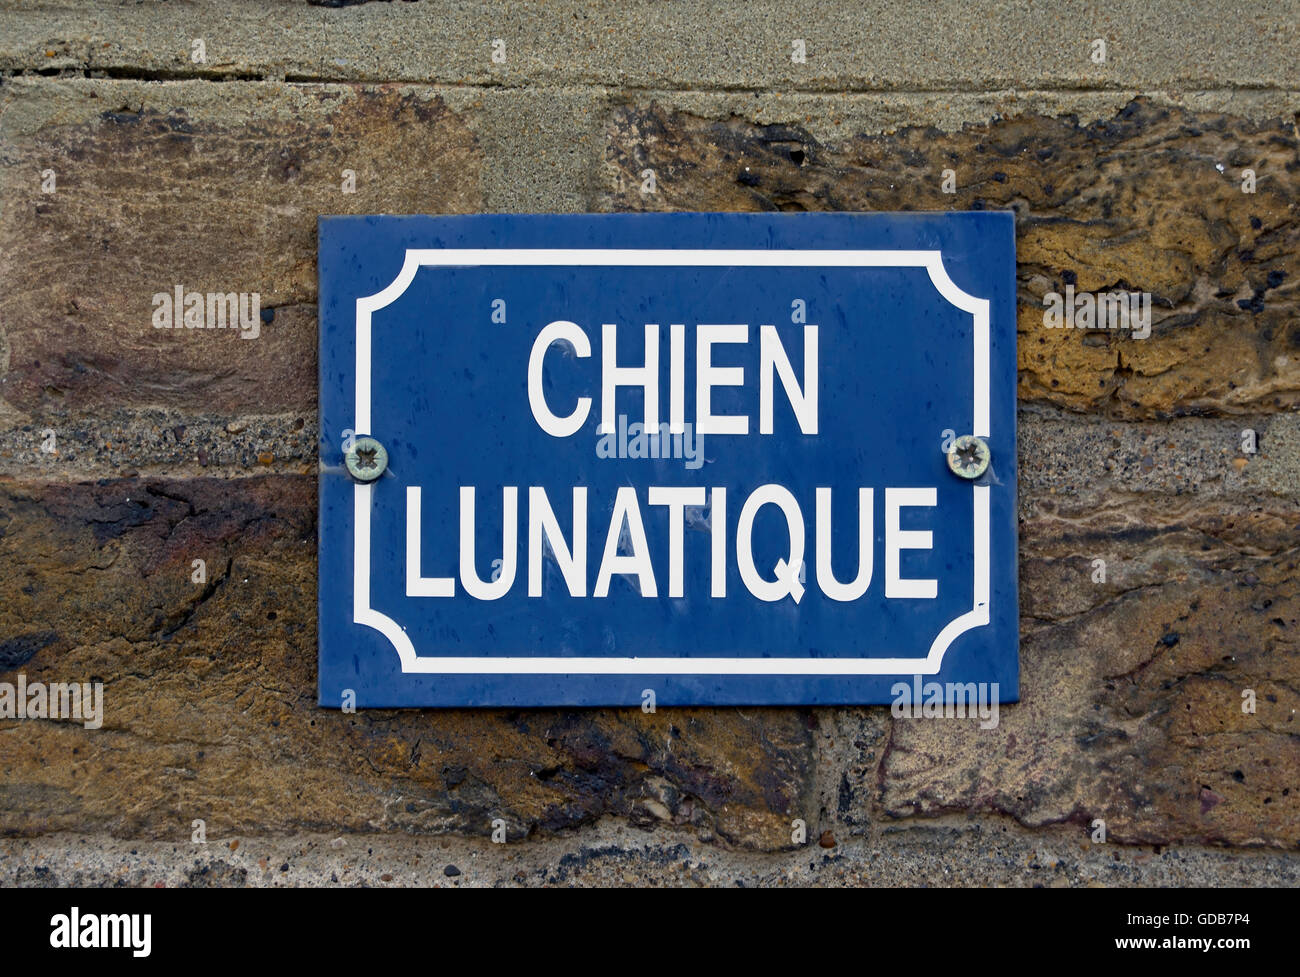 Mad Dog Sign Stock Photos Images Alamy Wiring Diagram Chien Lunatique On British House Exterior Of Warning In French A Crazy Or